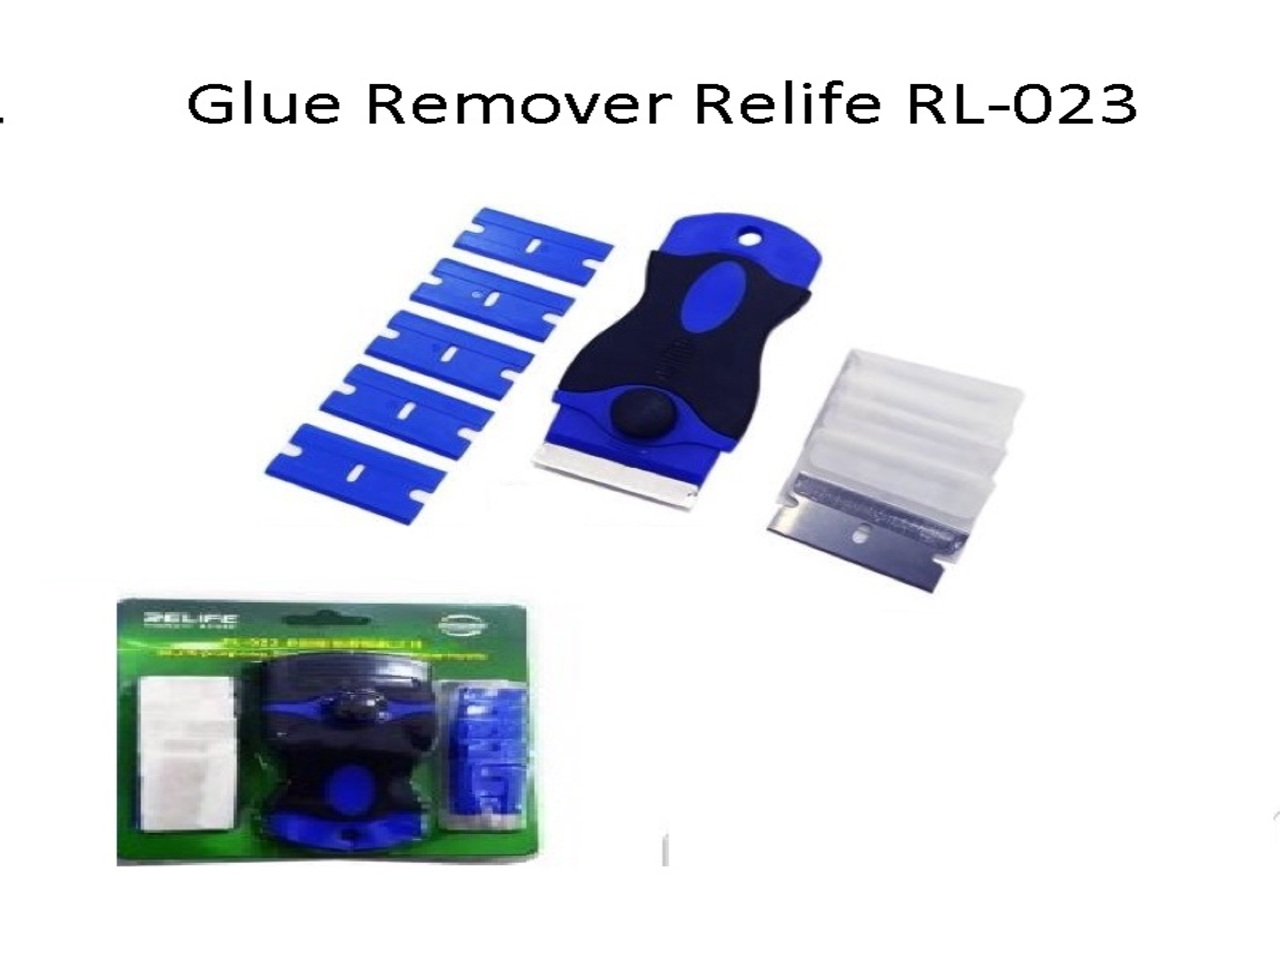 GLUE-REMOVER-RELIFE-RL-023